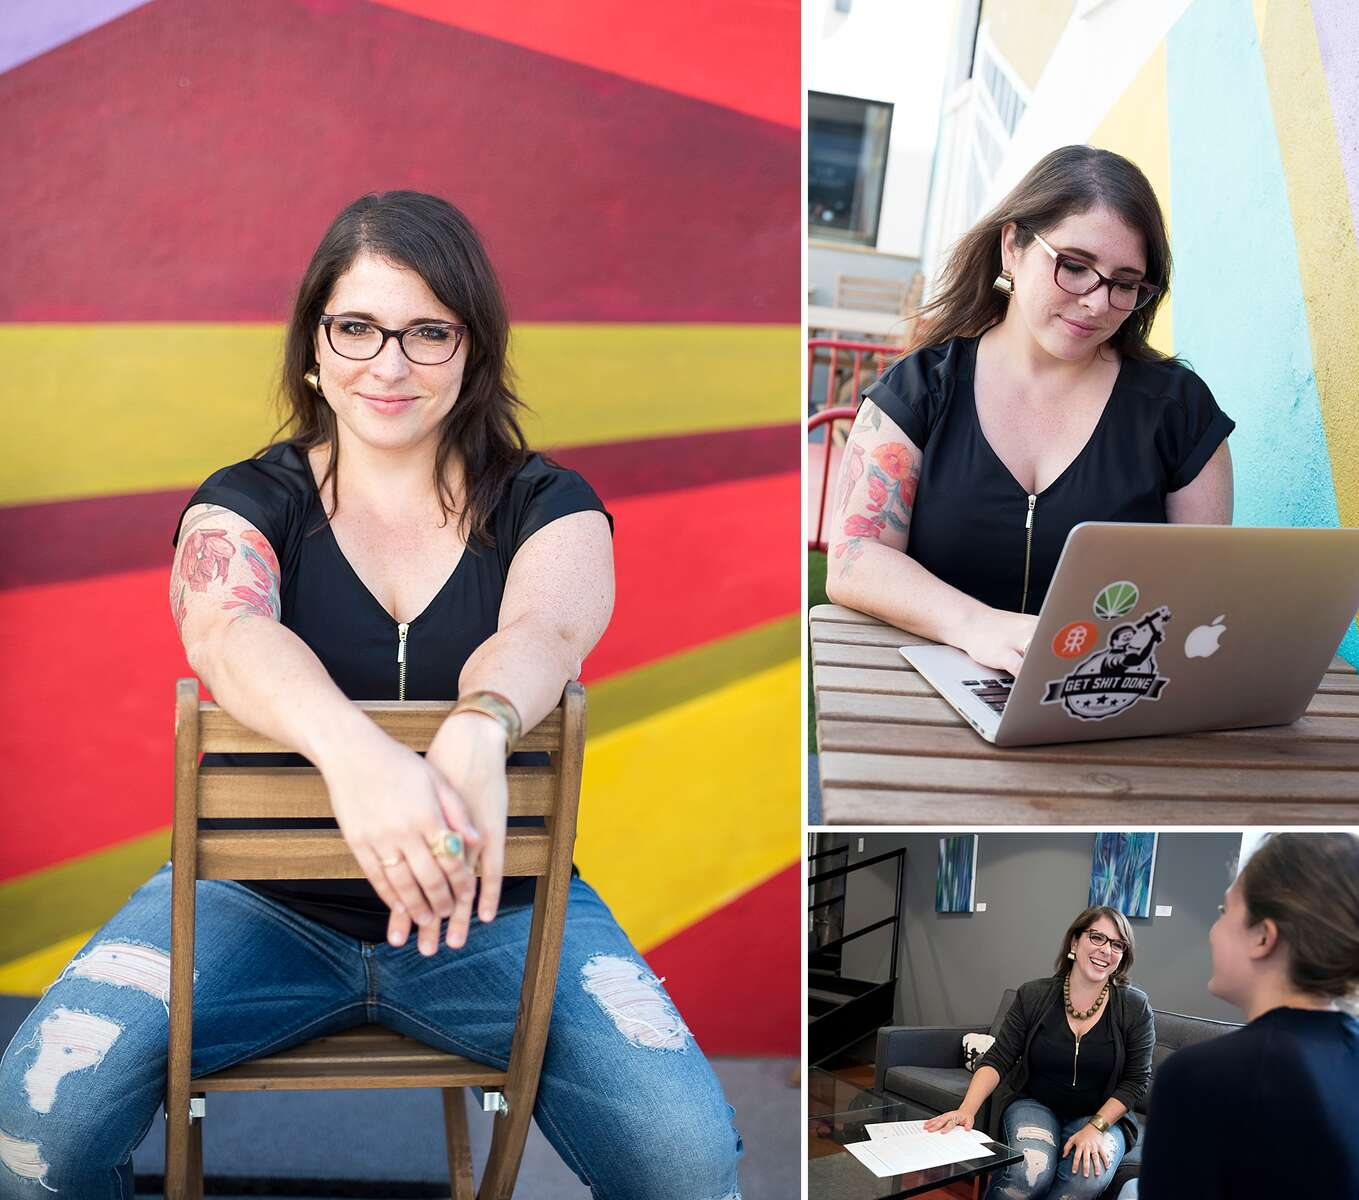 Every few years, Dana refreshes her headshots and this time we did them at The Yard in Gowanus where her business is located. The shoot was a combination of portraits and also photos showing Dana working and interacting with clients.